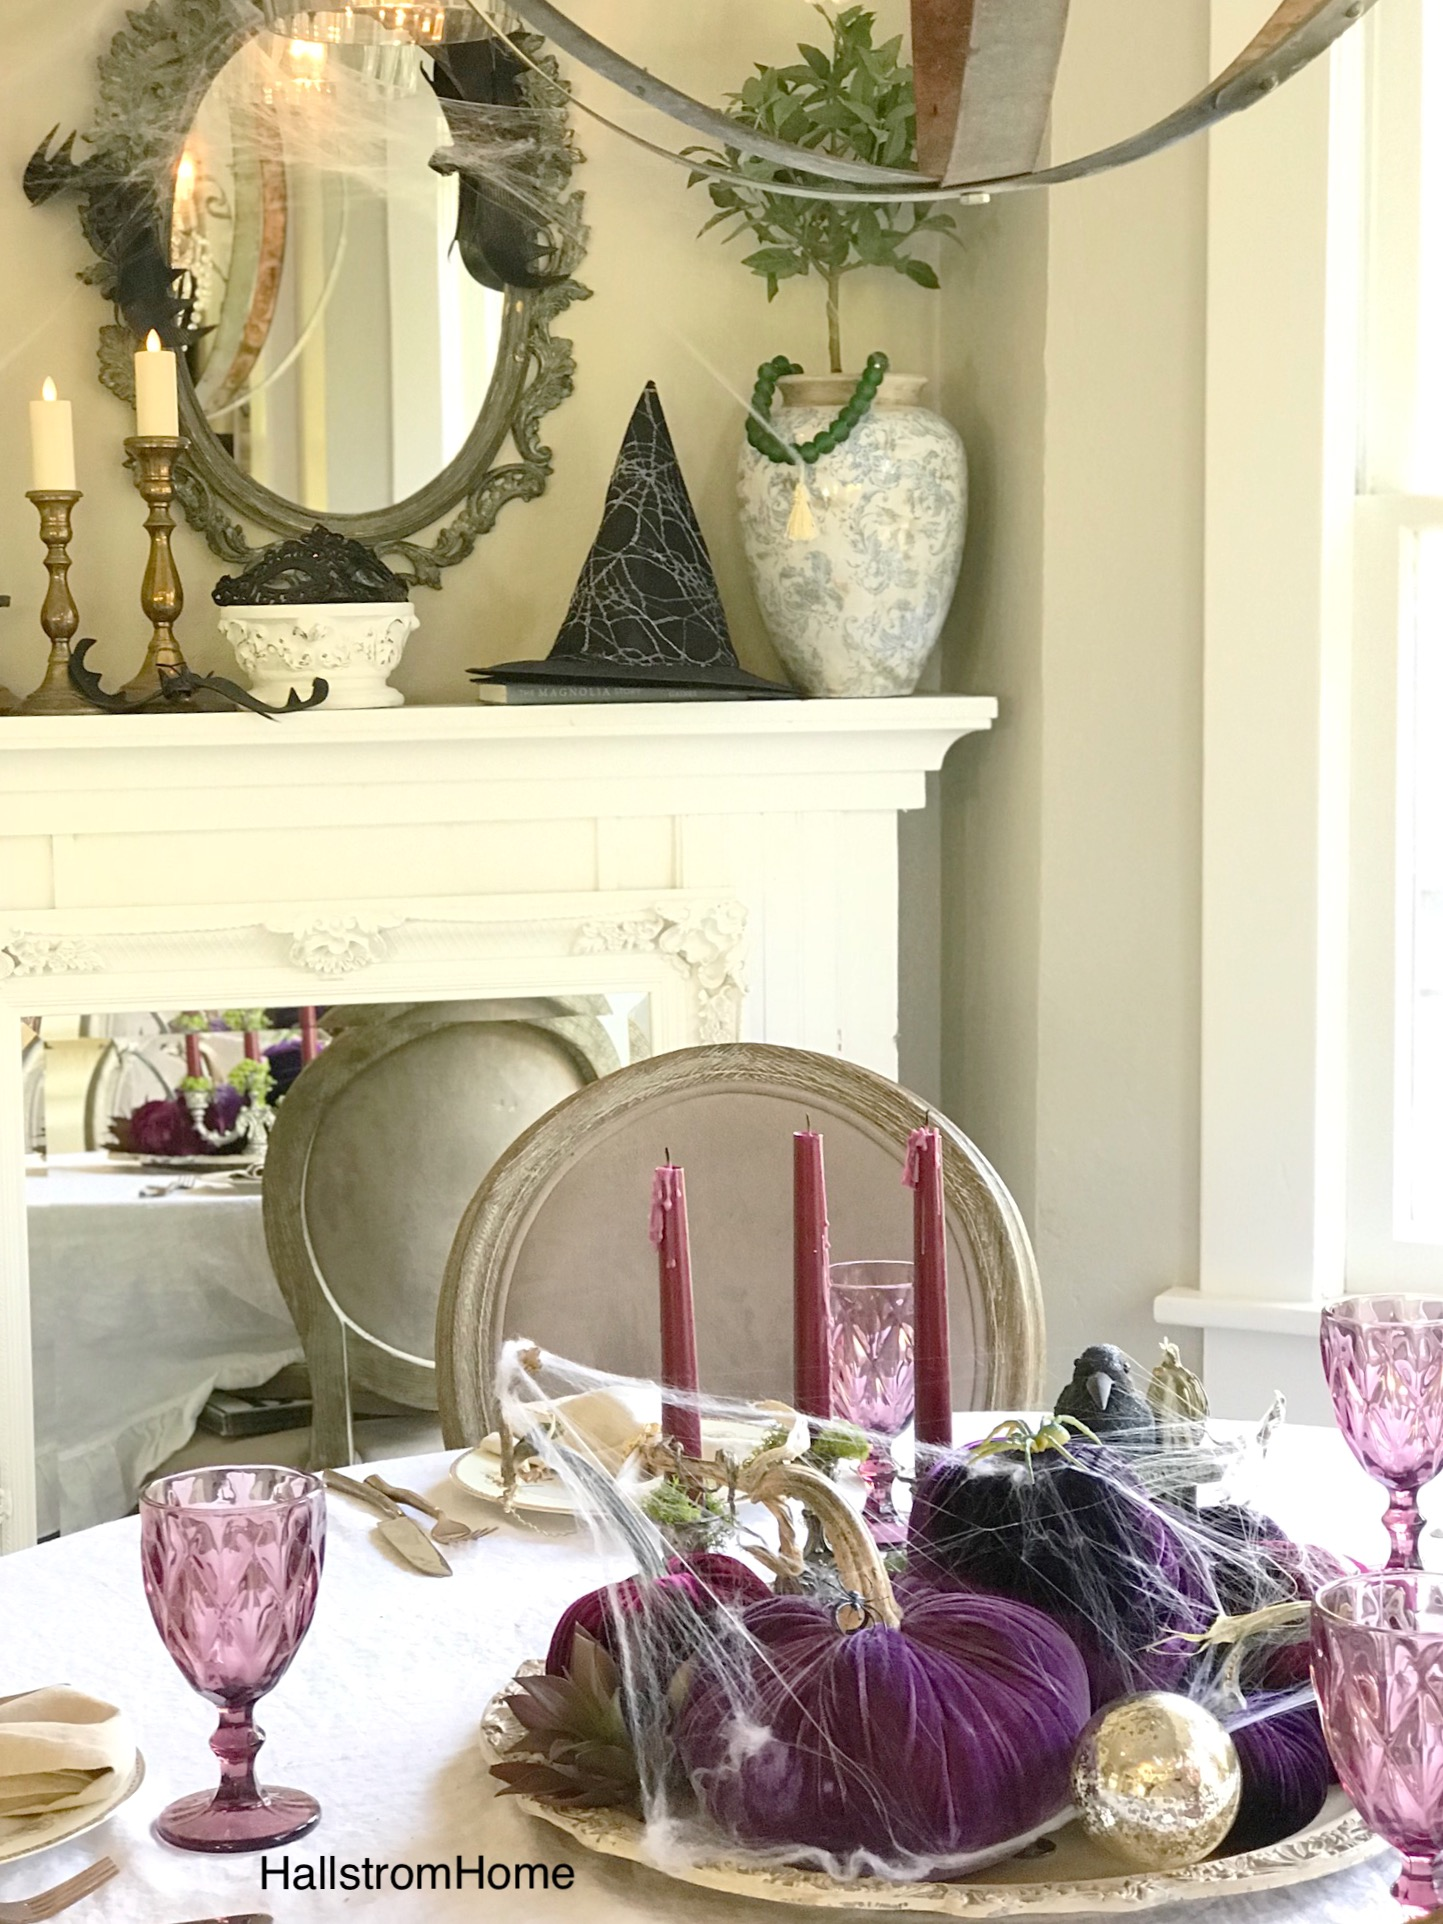 Classy Halloween Table with Just a Little Spooky